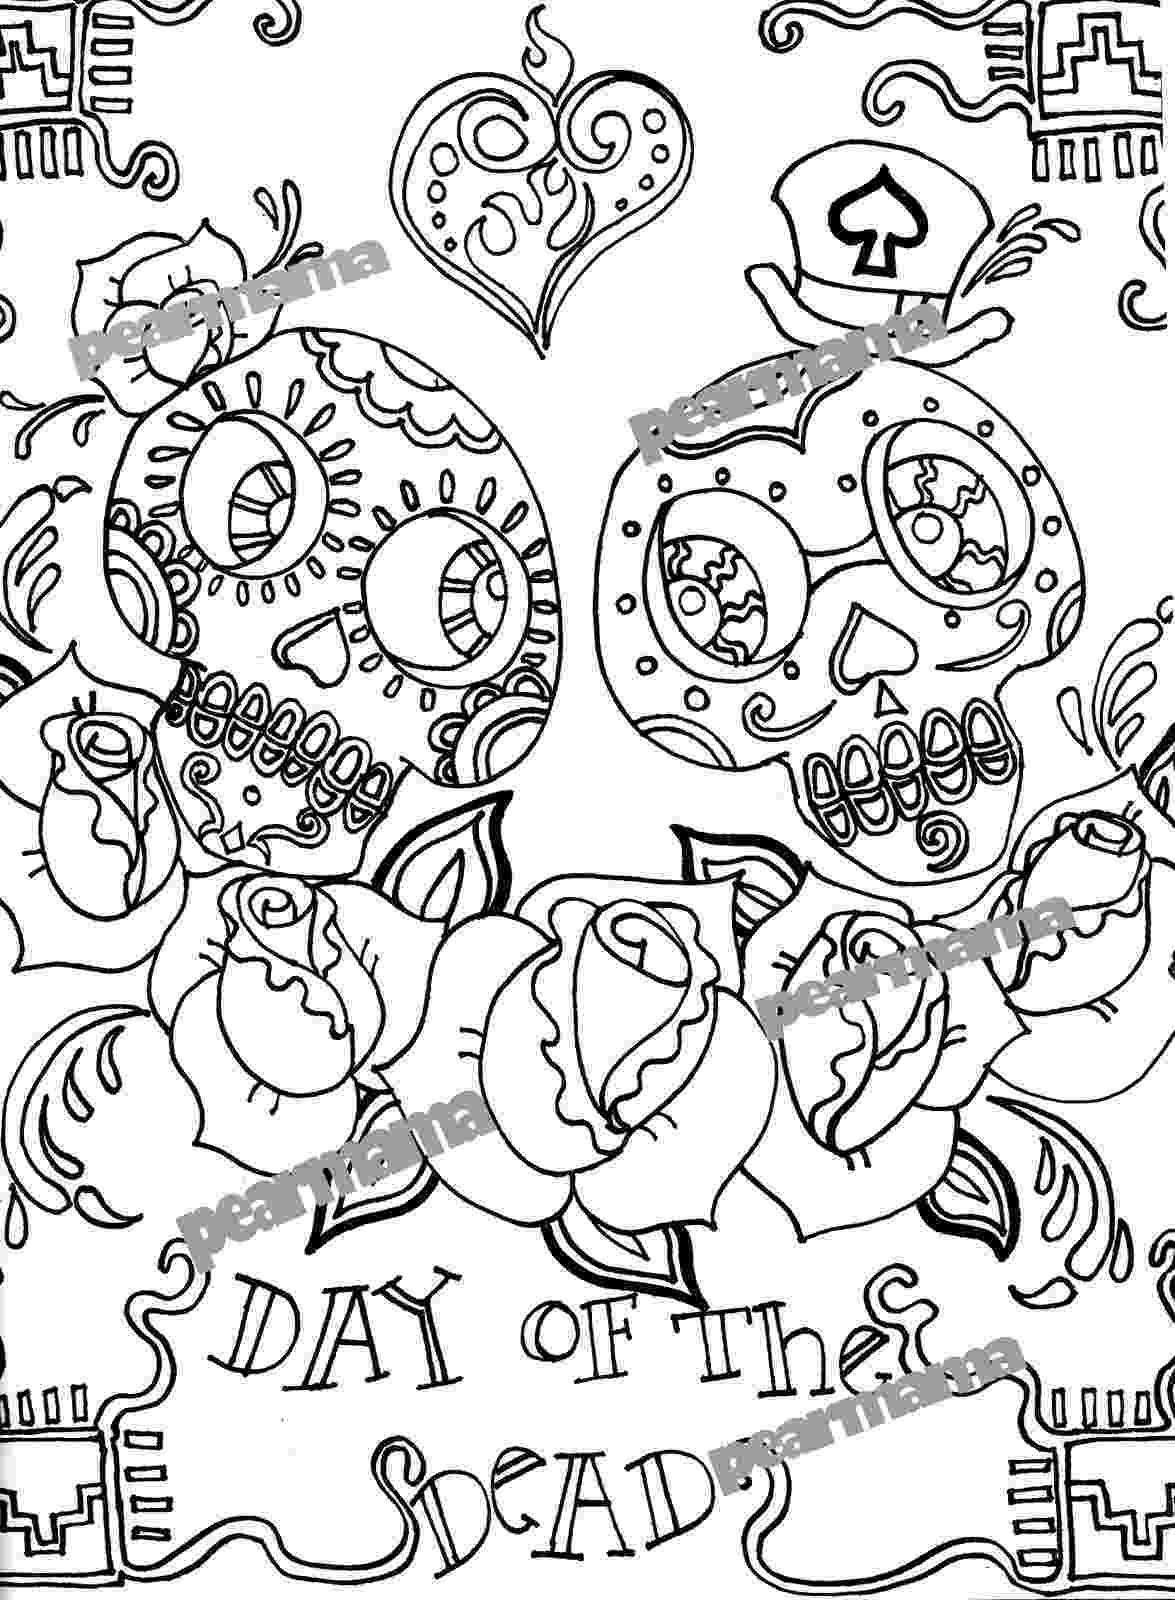 day of the dead printable pictures free printable day of the dead coloring pages best pictures of day dead the printable